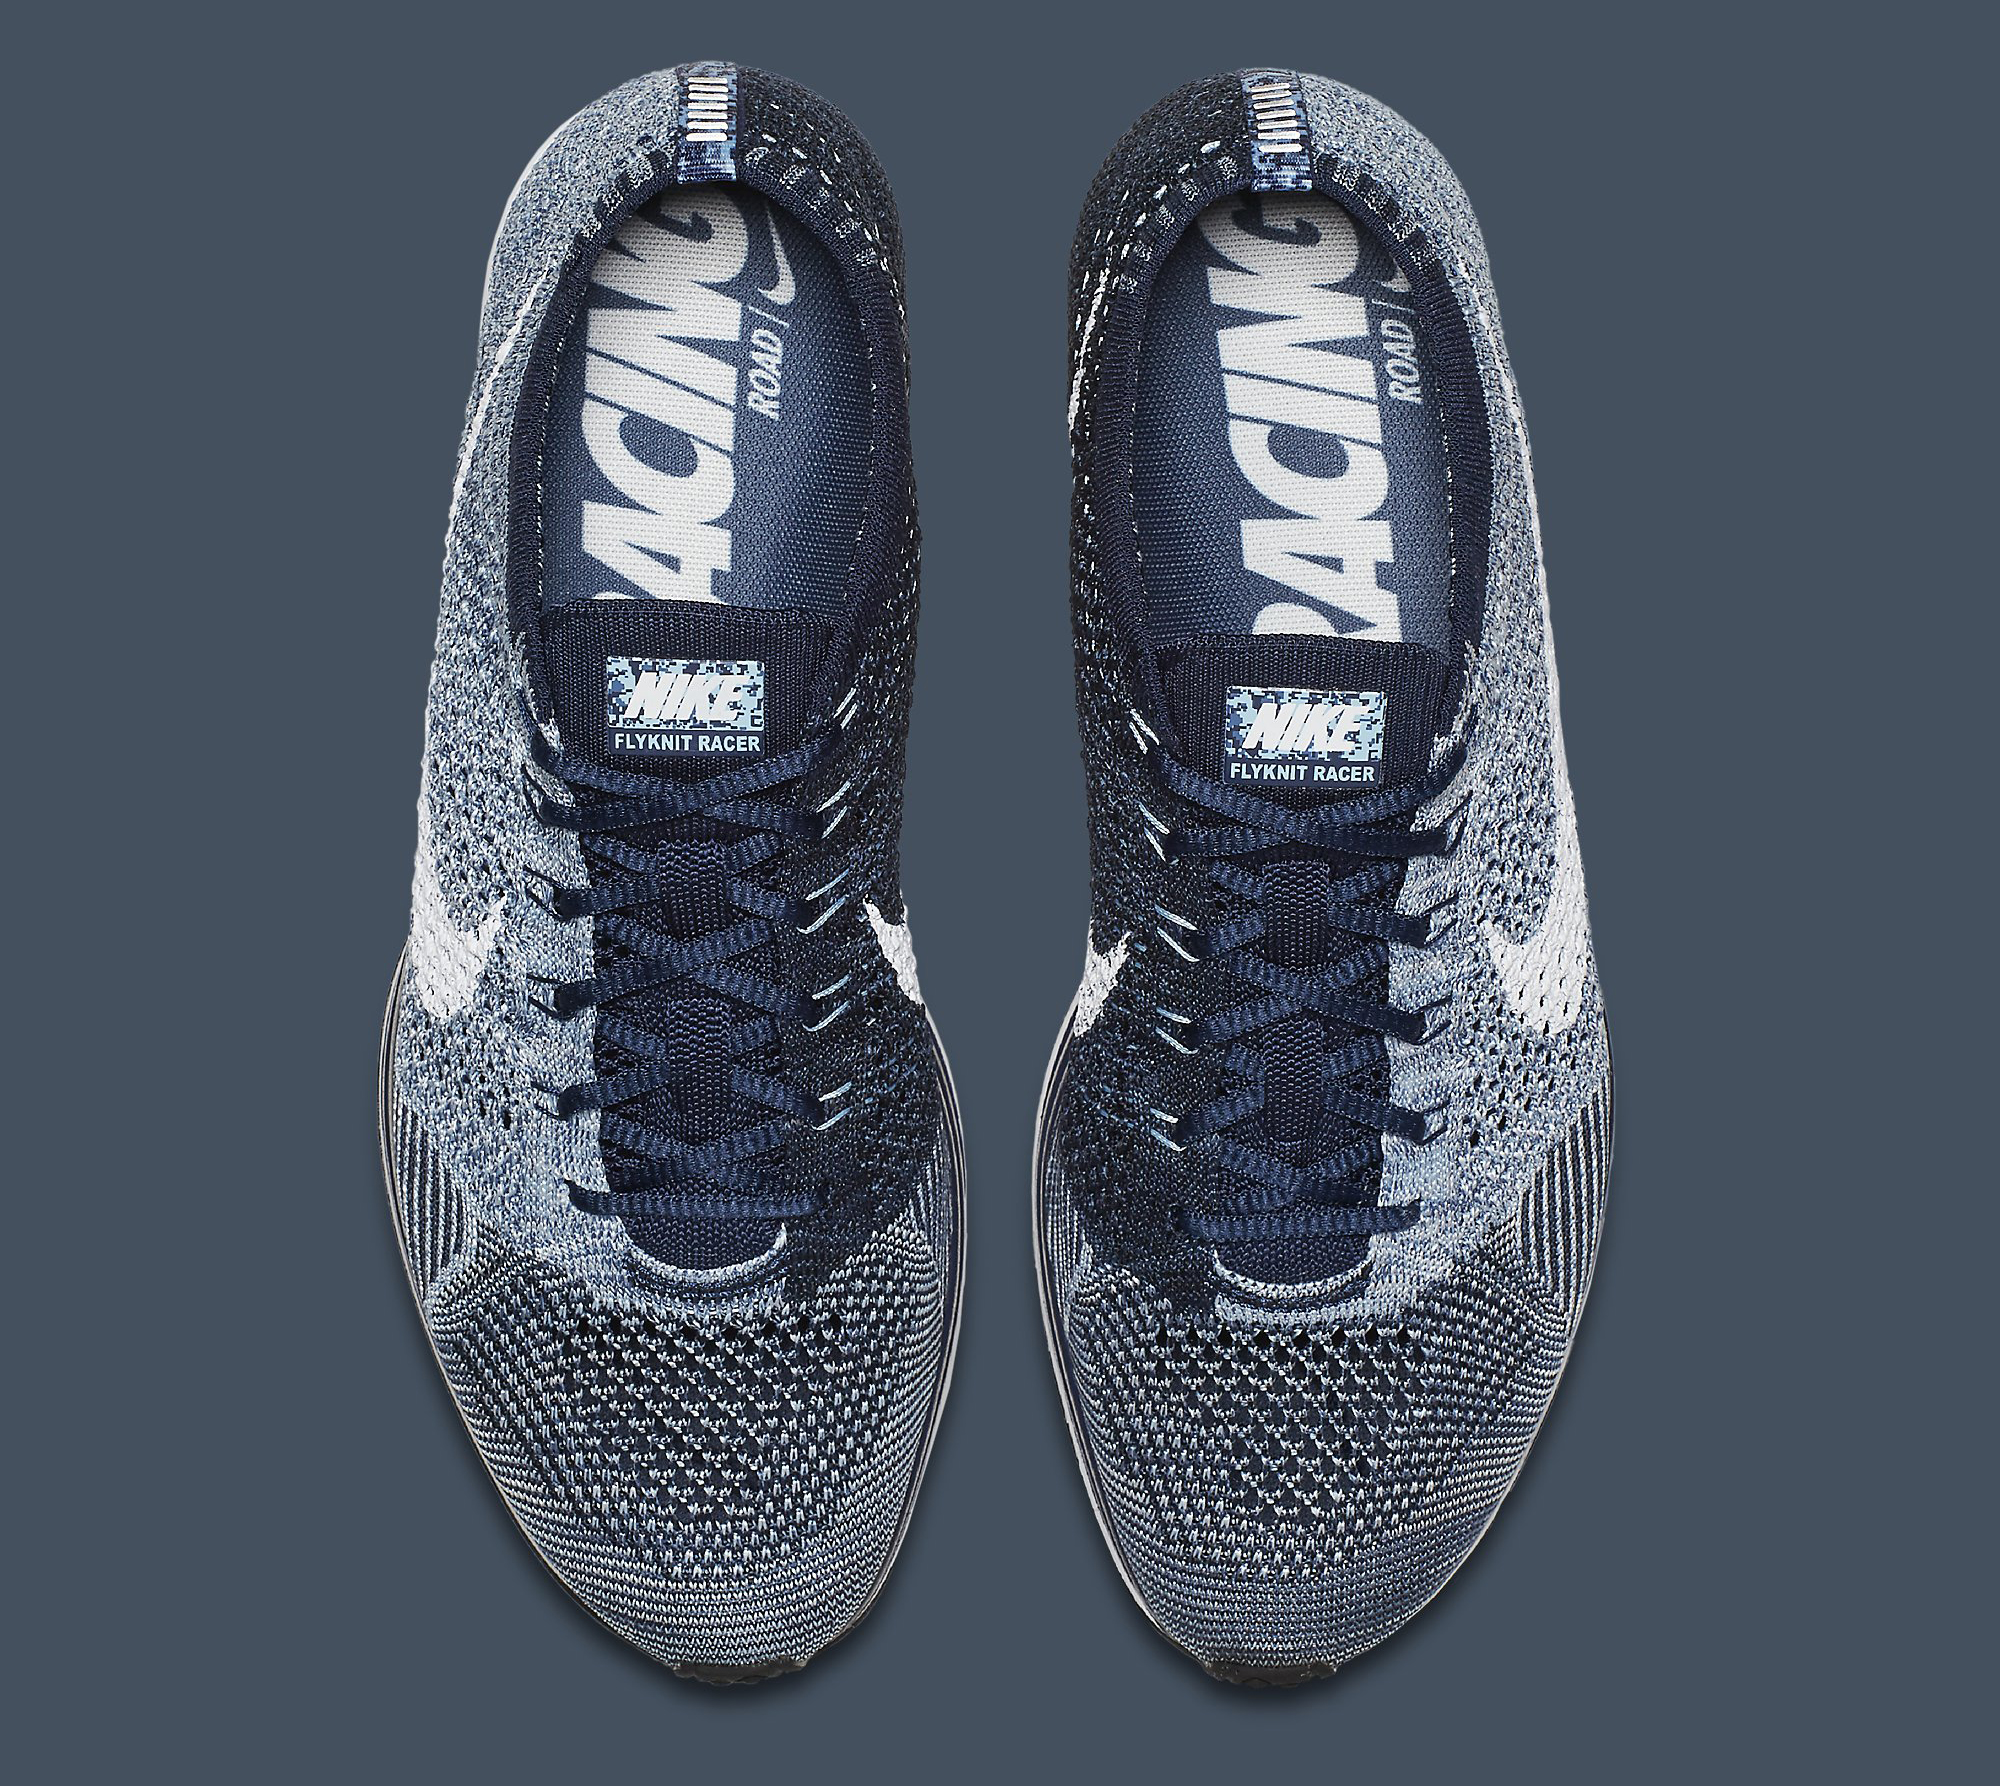 info for fd3f7 cfd81 Image via Nike Nike Flyknit Racer Blue Tint White 862713-401 Top